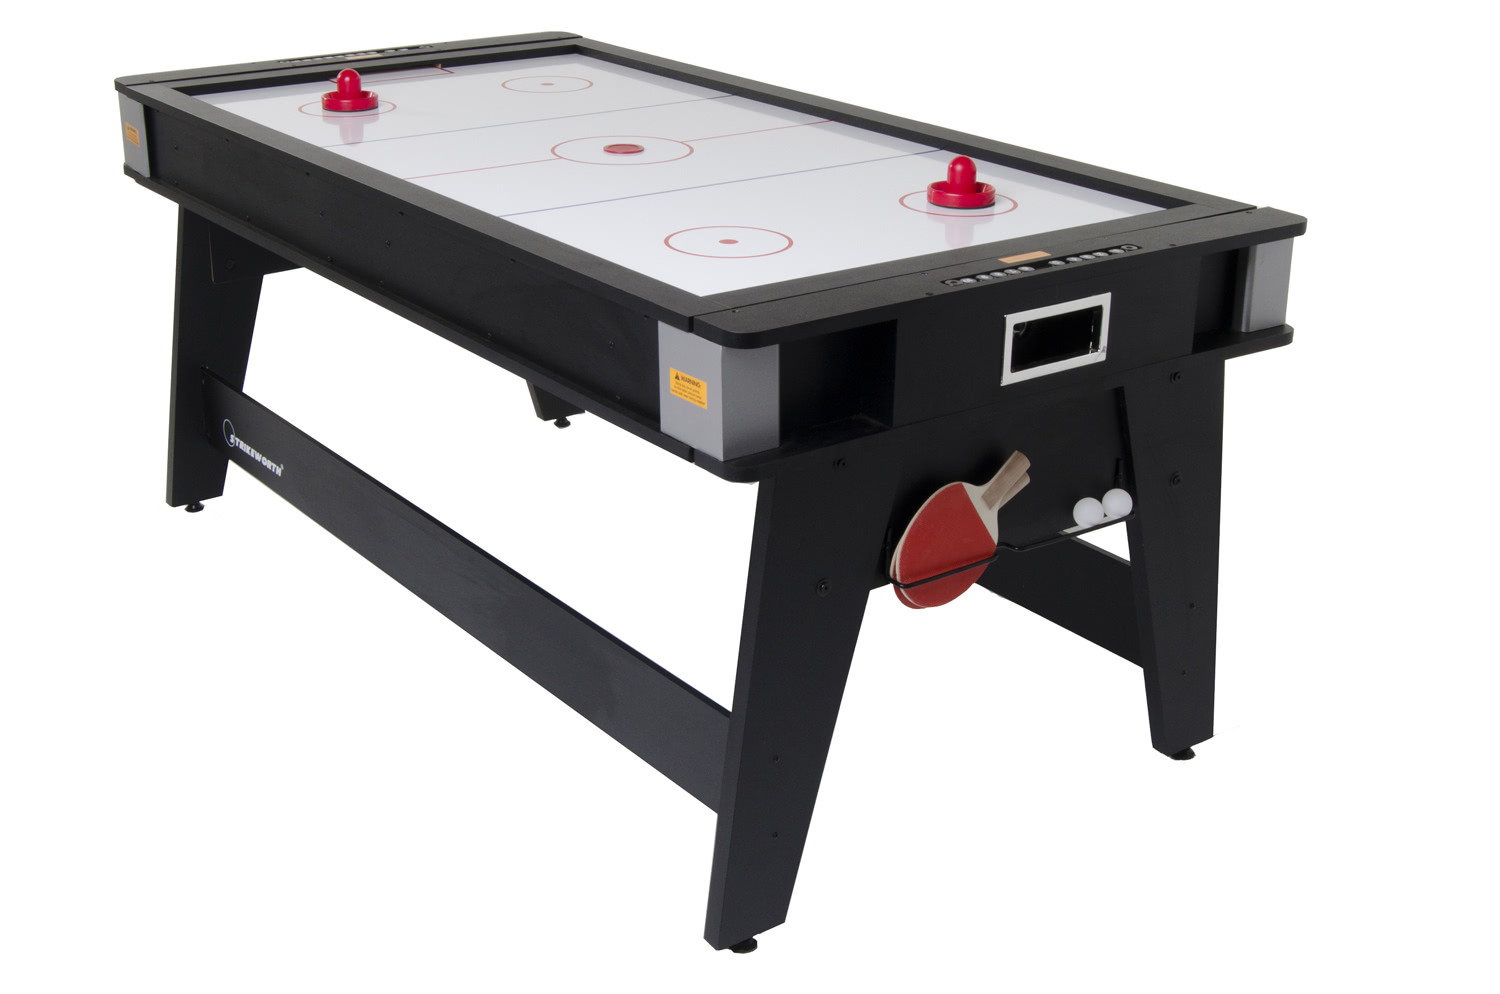 600c253075d 6ft Multi Games table air hockey playfield